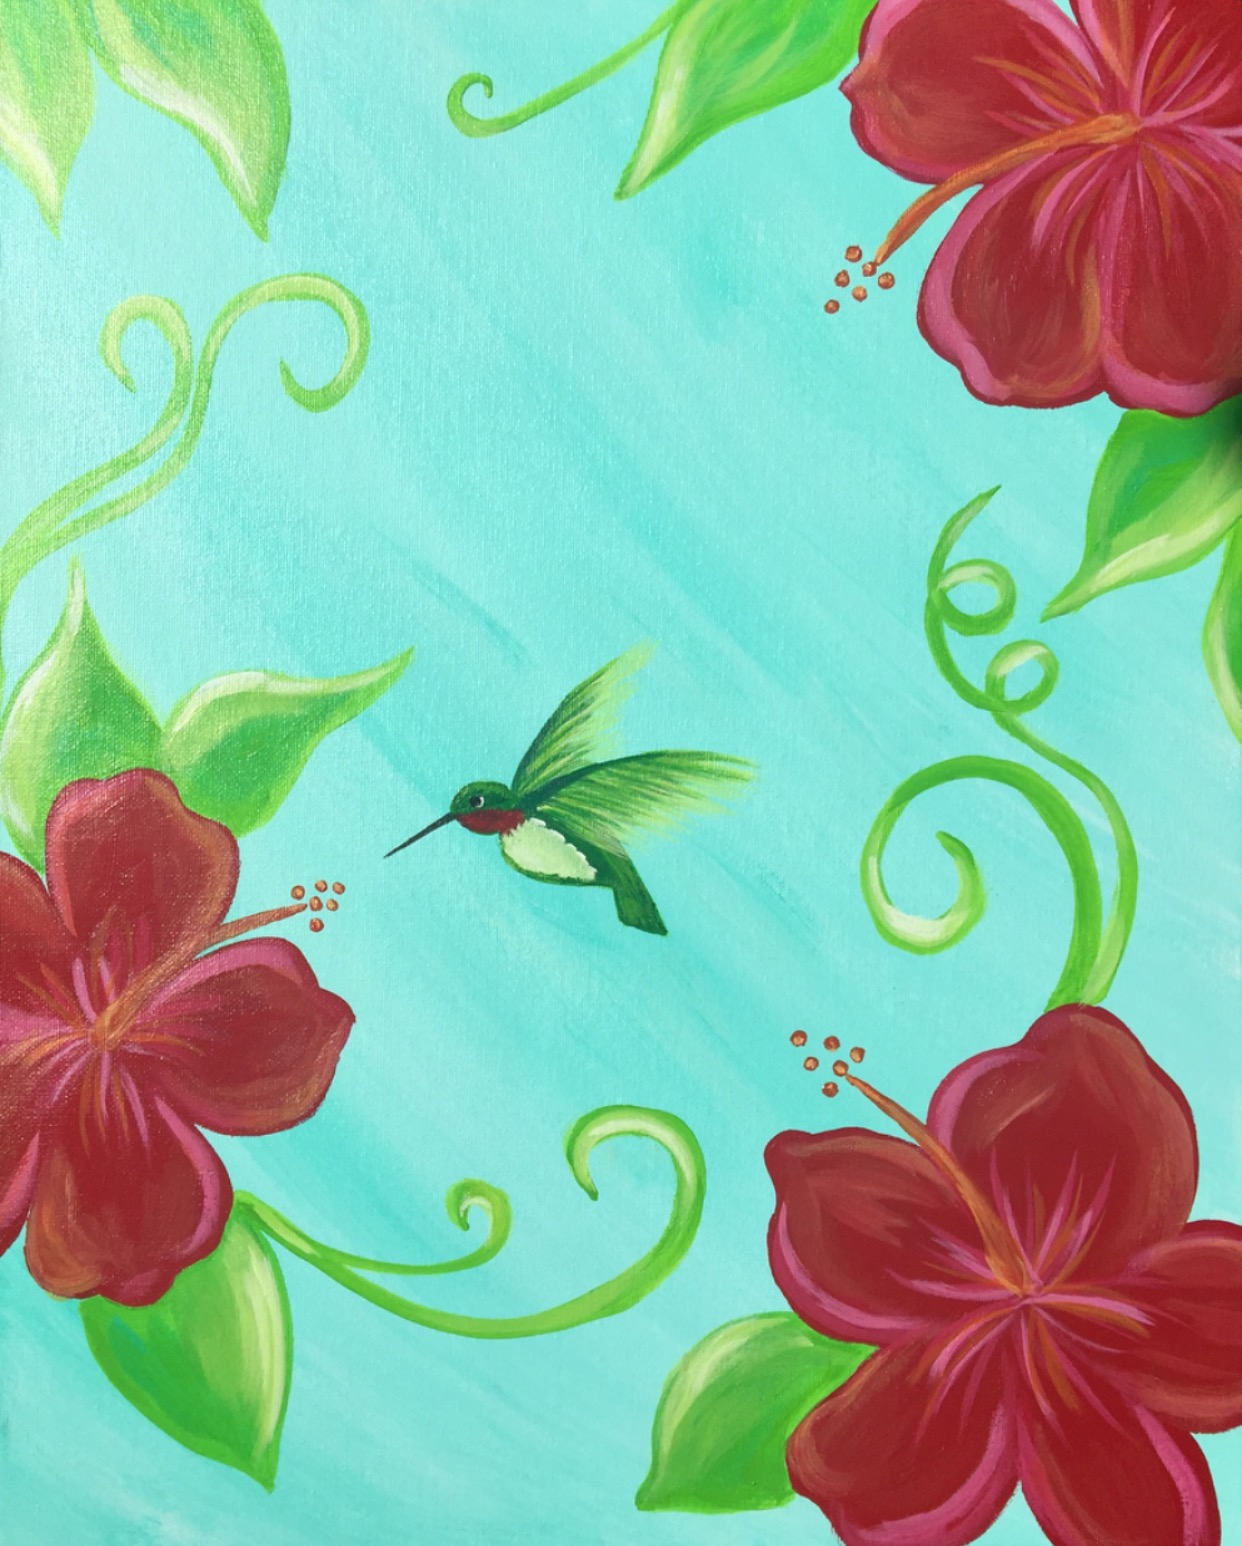 Hawaiian Hummingbird2.jpg